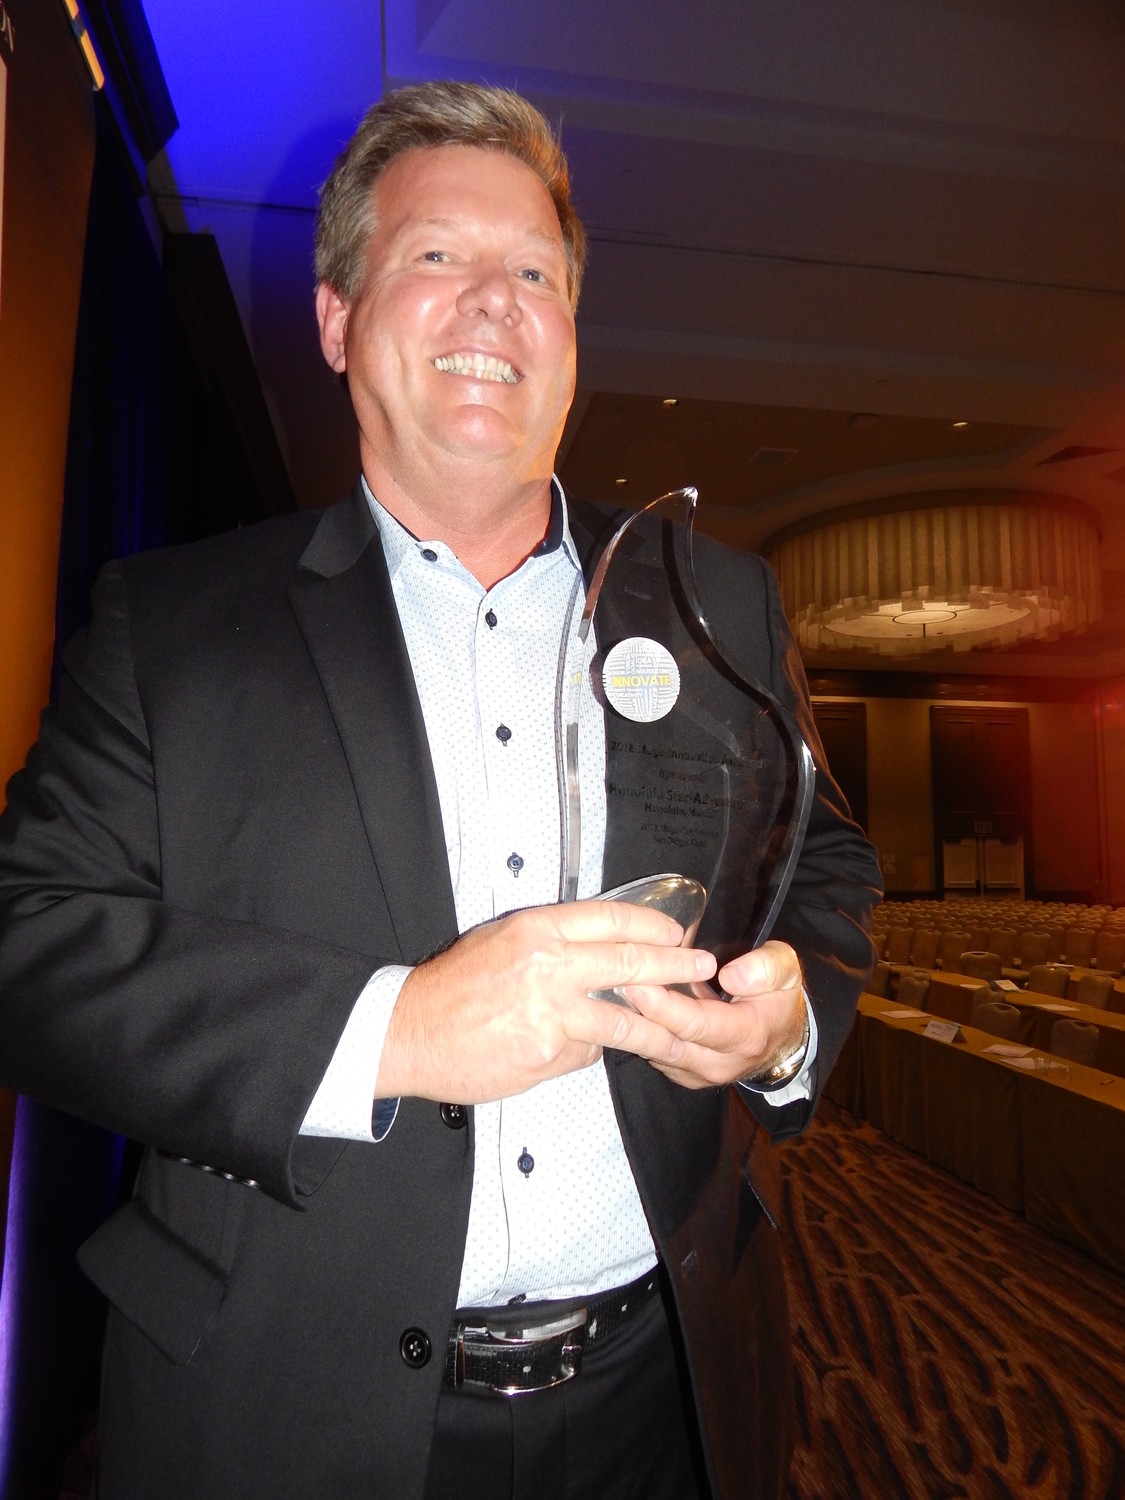 Congratulations to the Honolulu Star-Advertiser, recipient of the 2018 Mega-Innovation Award.  The award was accepted by David Kennedy, chief revenue officer, Oahu Publications, Inc. LEARN MORE